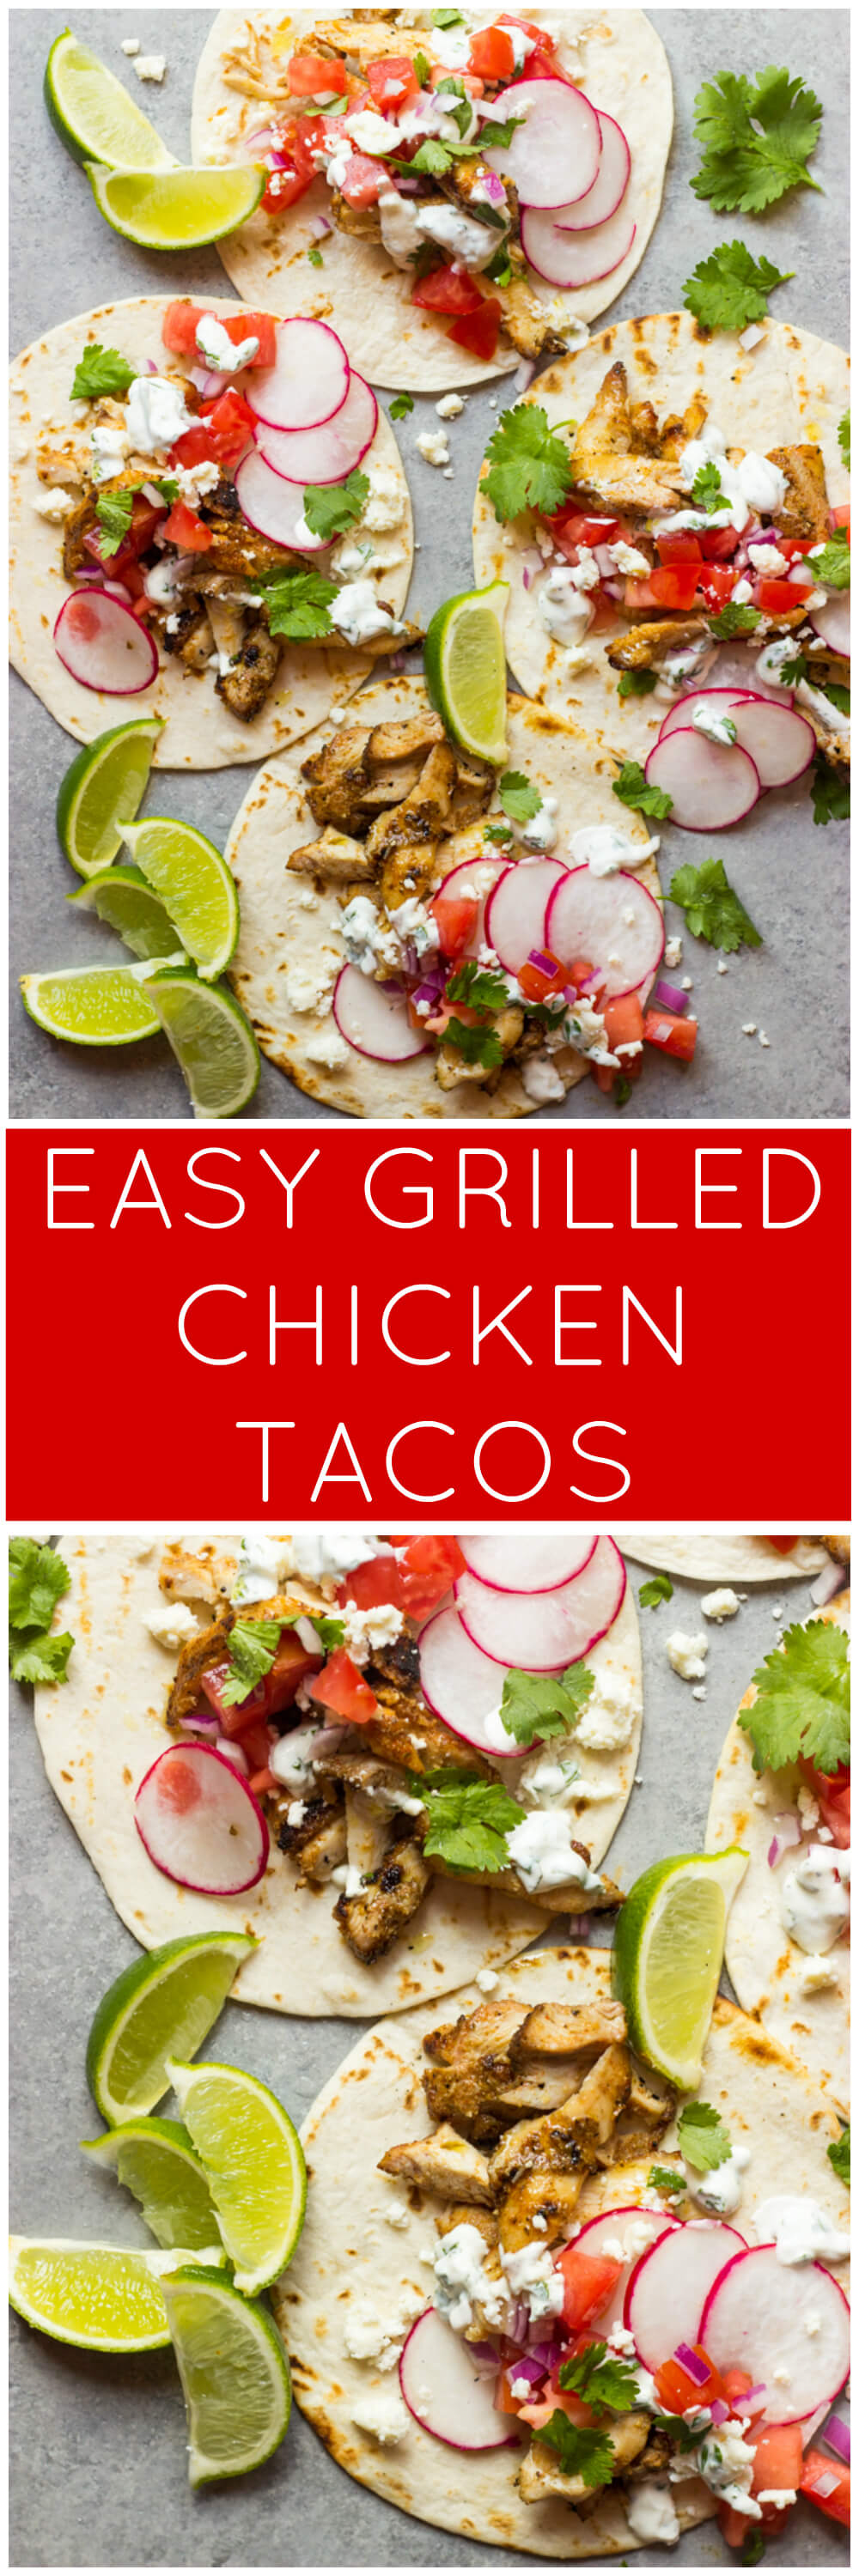 Easy Grilled Chicken Tacos - these tacos are made with thighs instead of breast, which makes them insanely juicy, flavorful, and they cook in fraction of time! | littlebroken.com @littlebroken